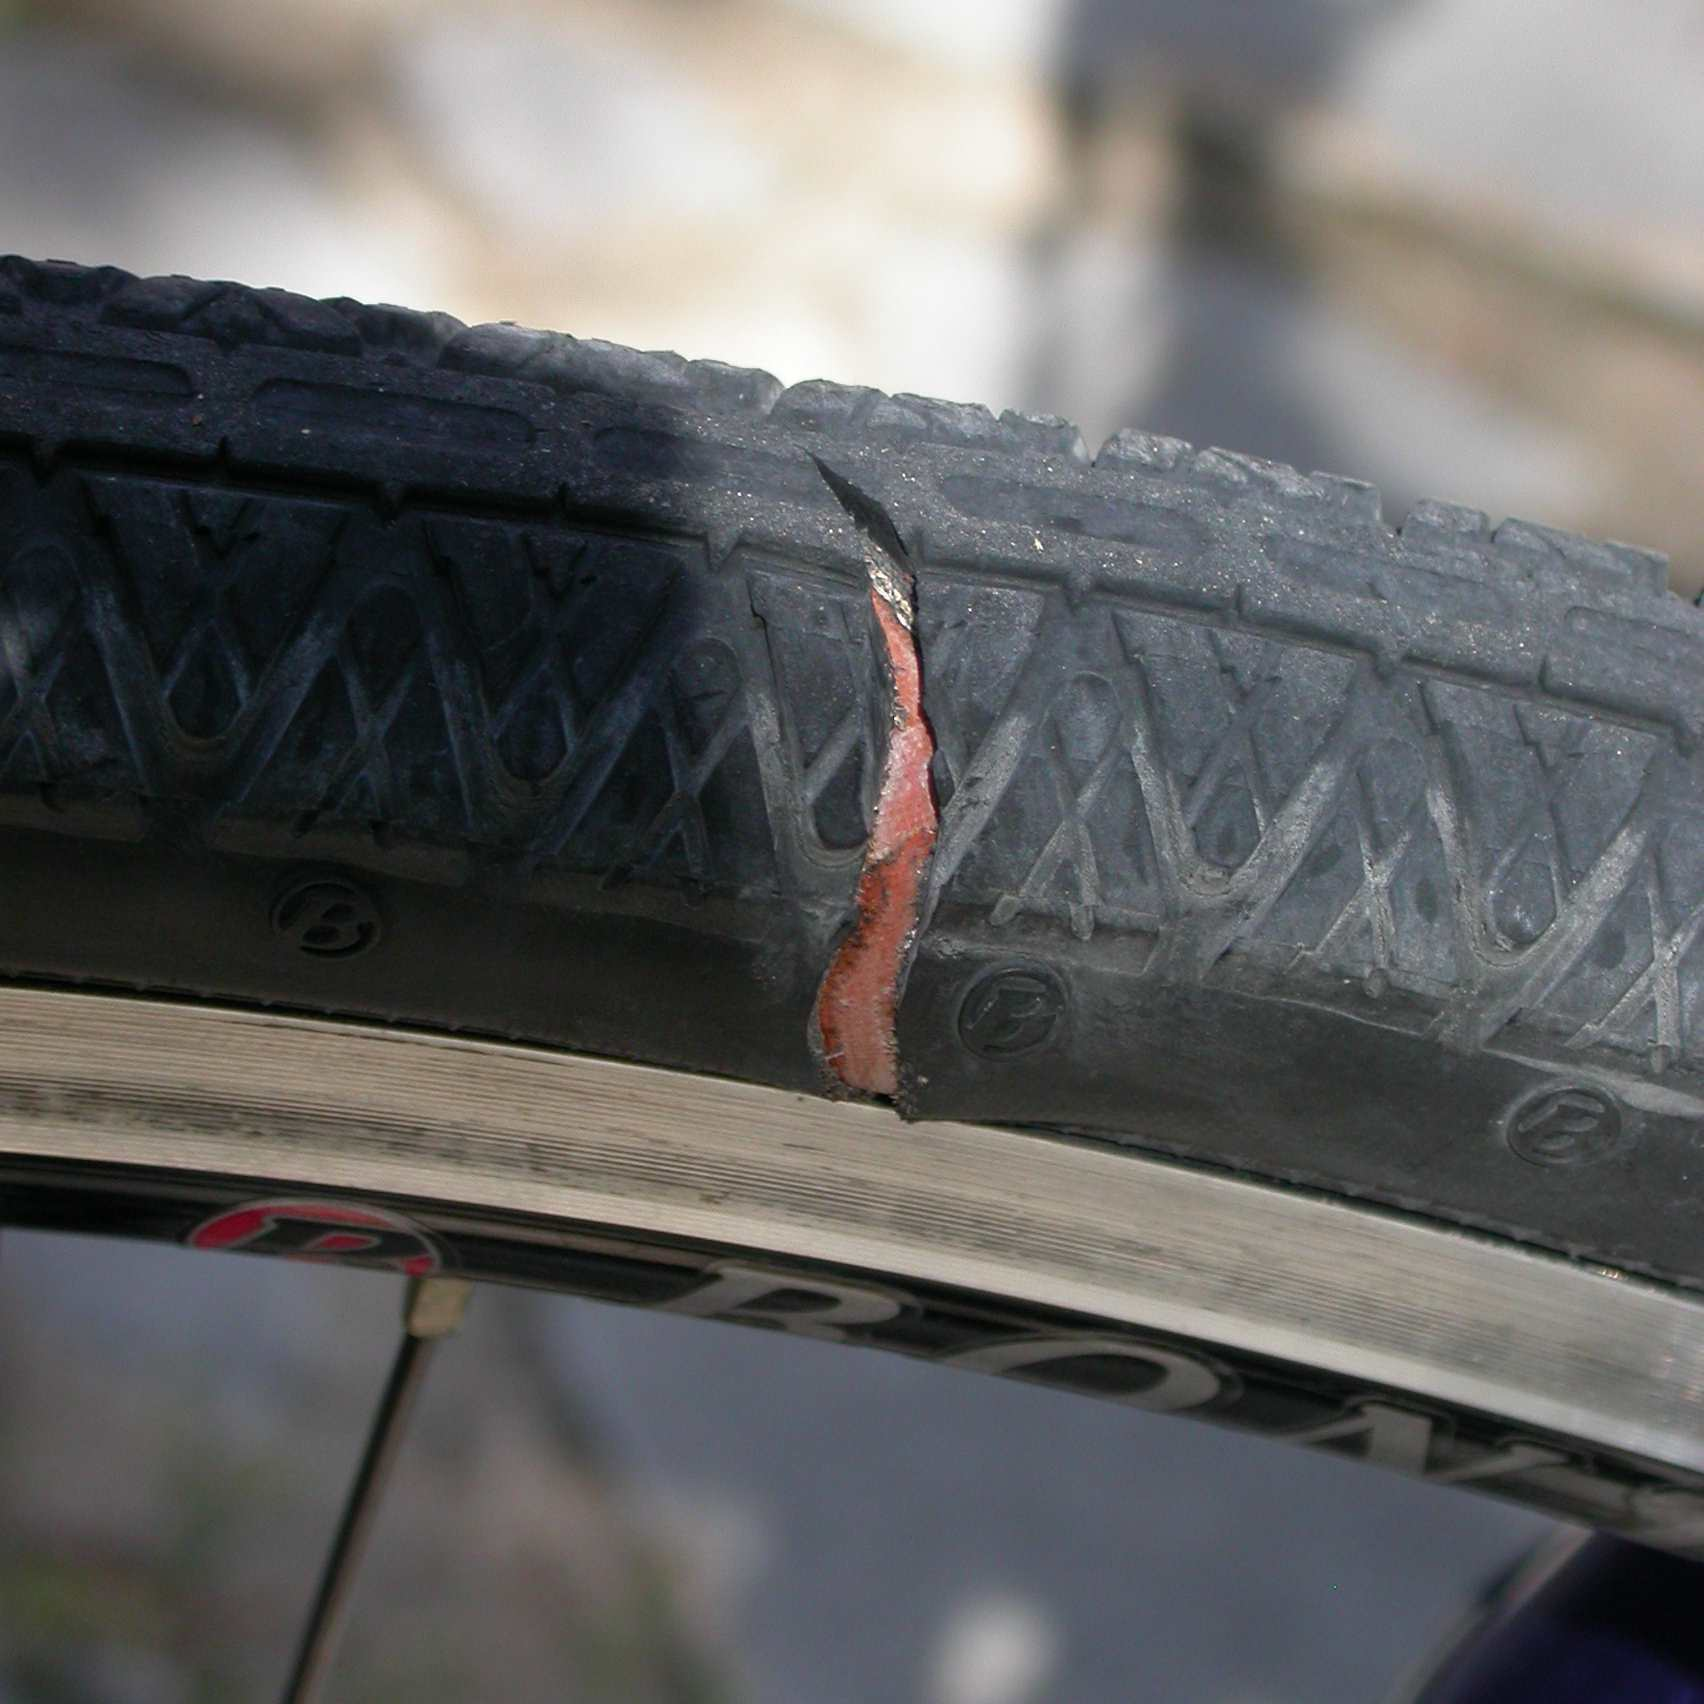 Bike tire with a gash in the sidewall